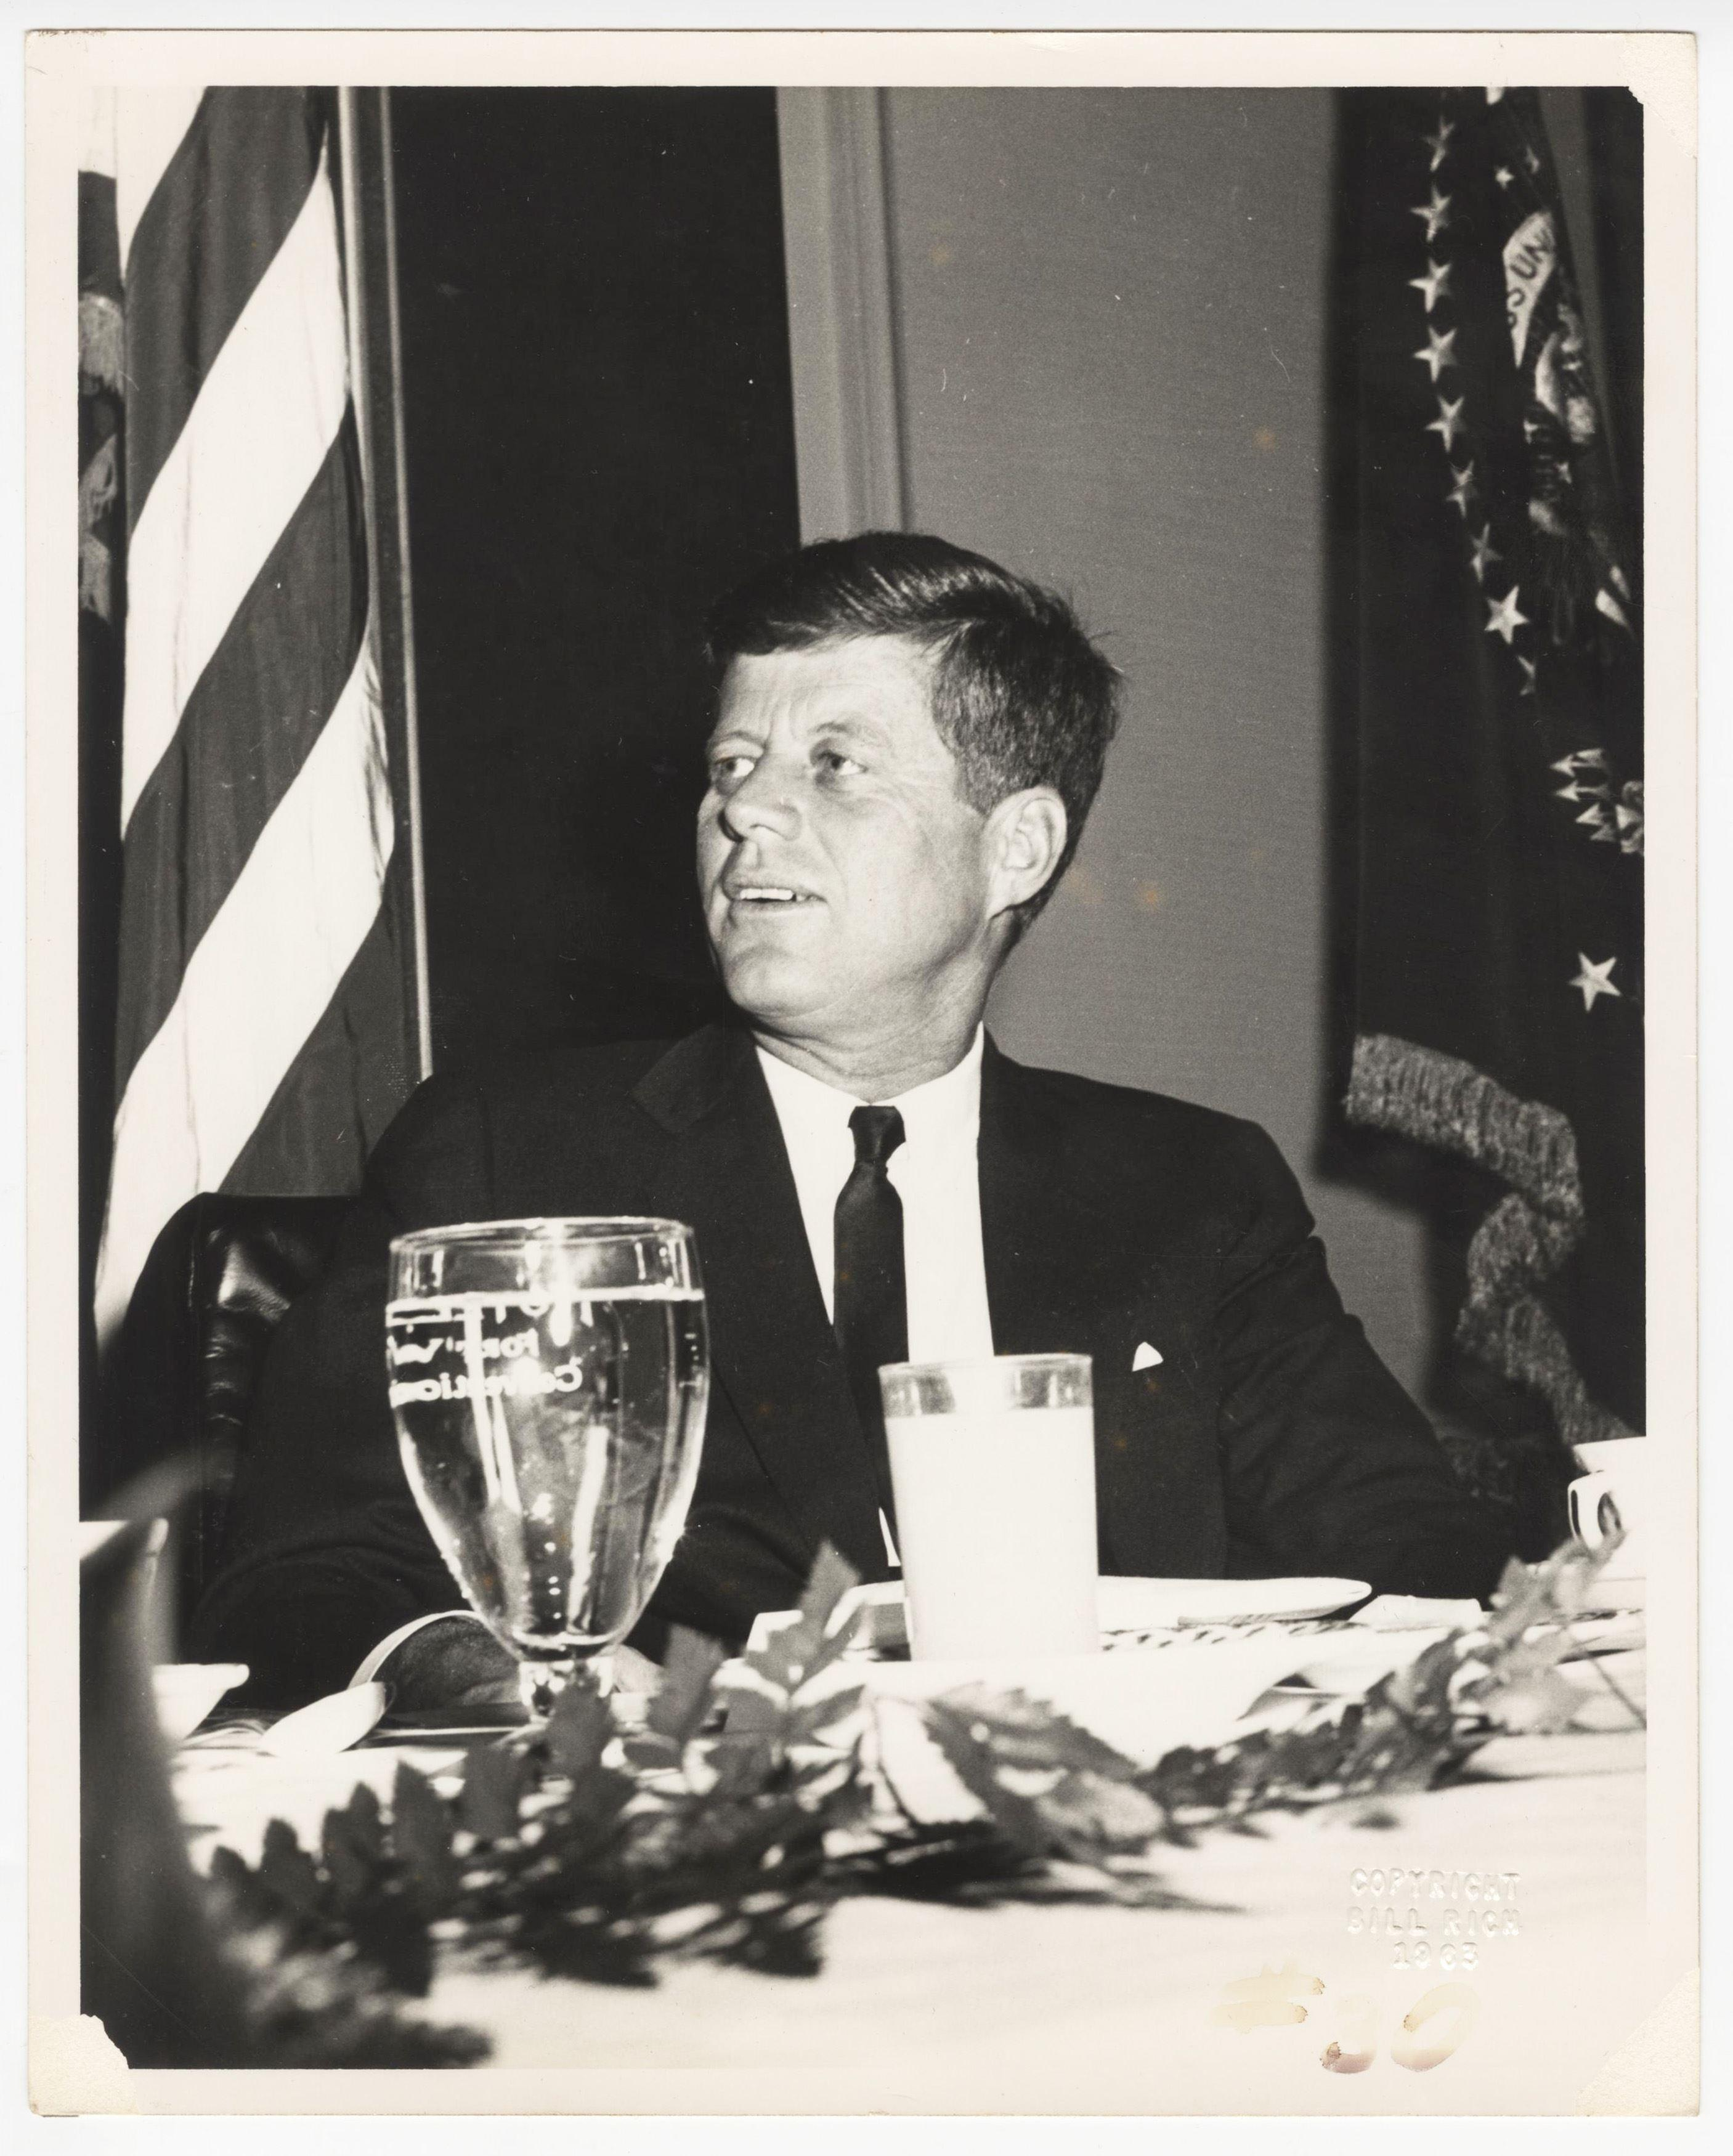 Magnificent JFK Vintage Photograph, Circa 1963